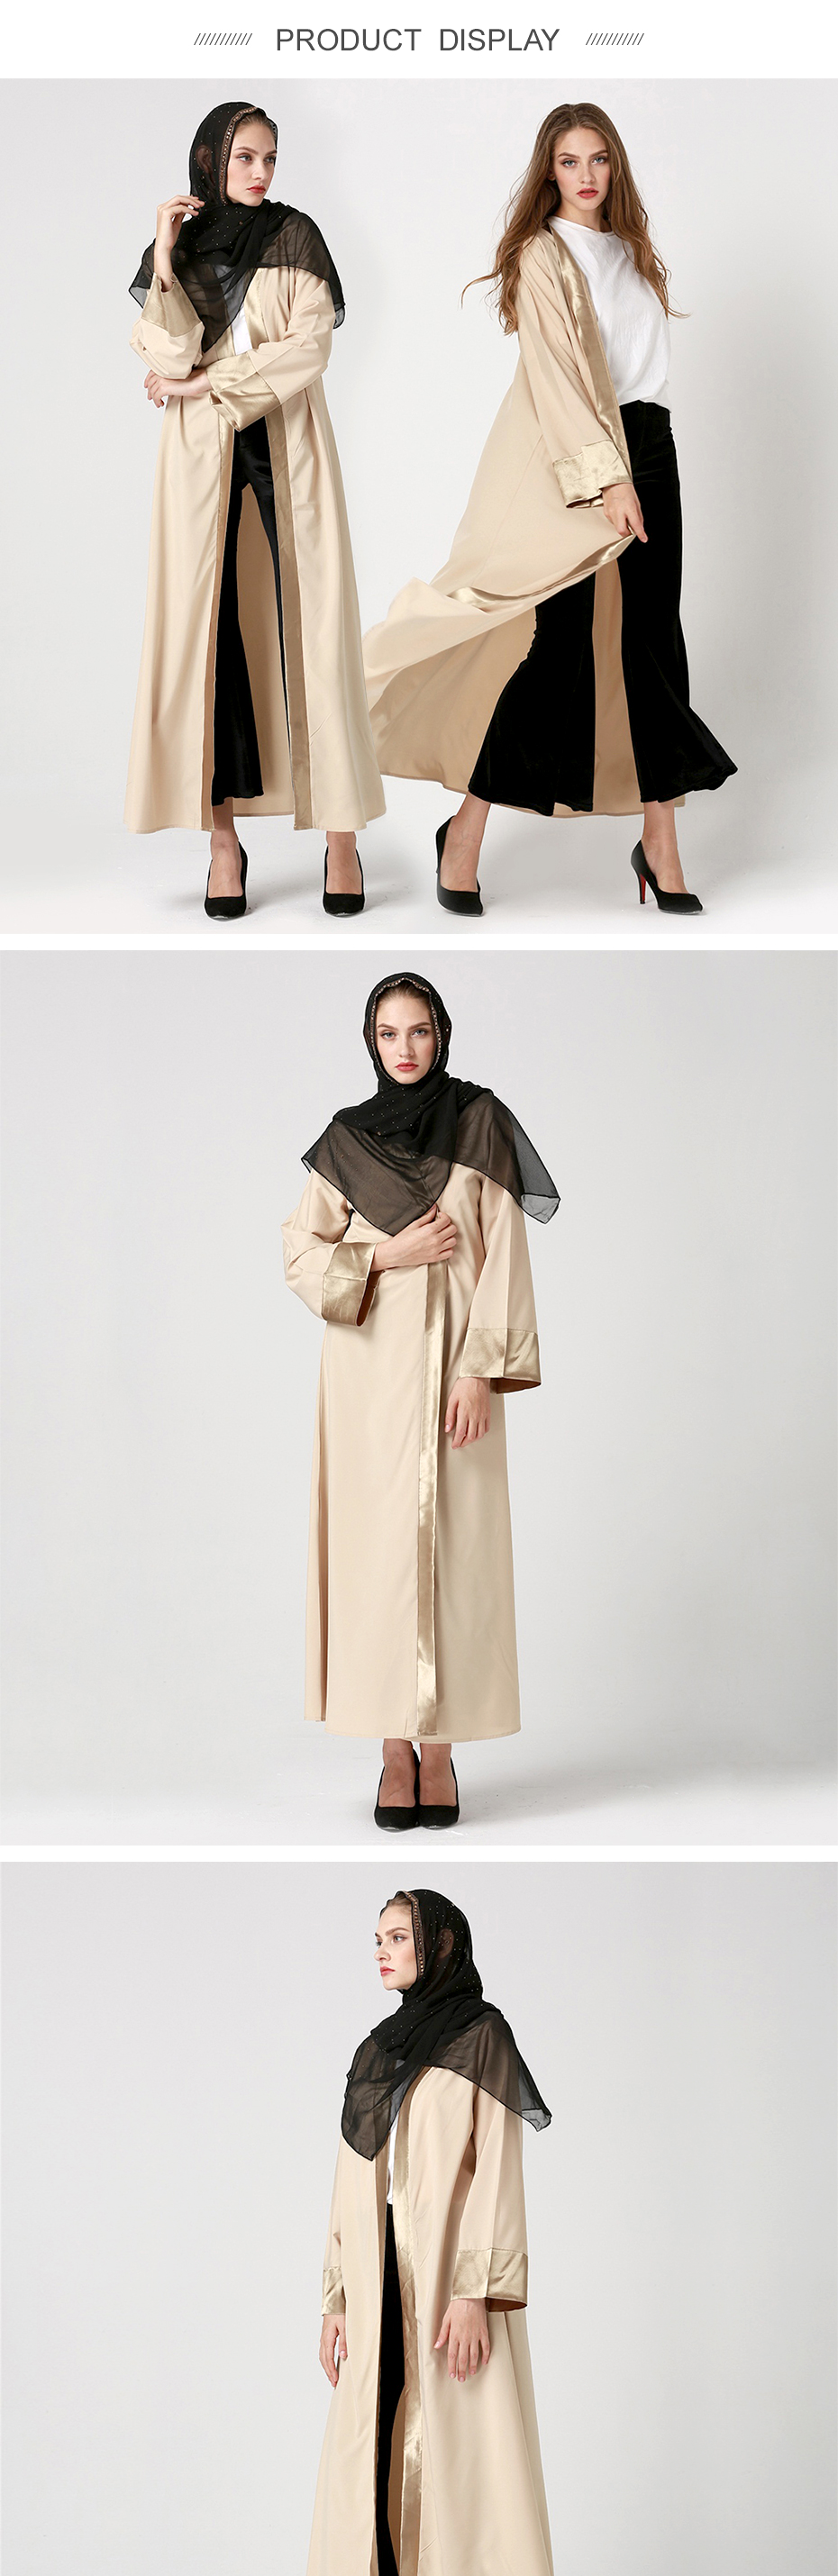 Women new adult casual robe